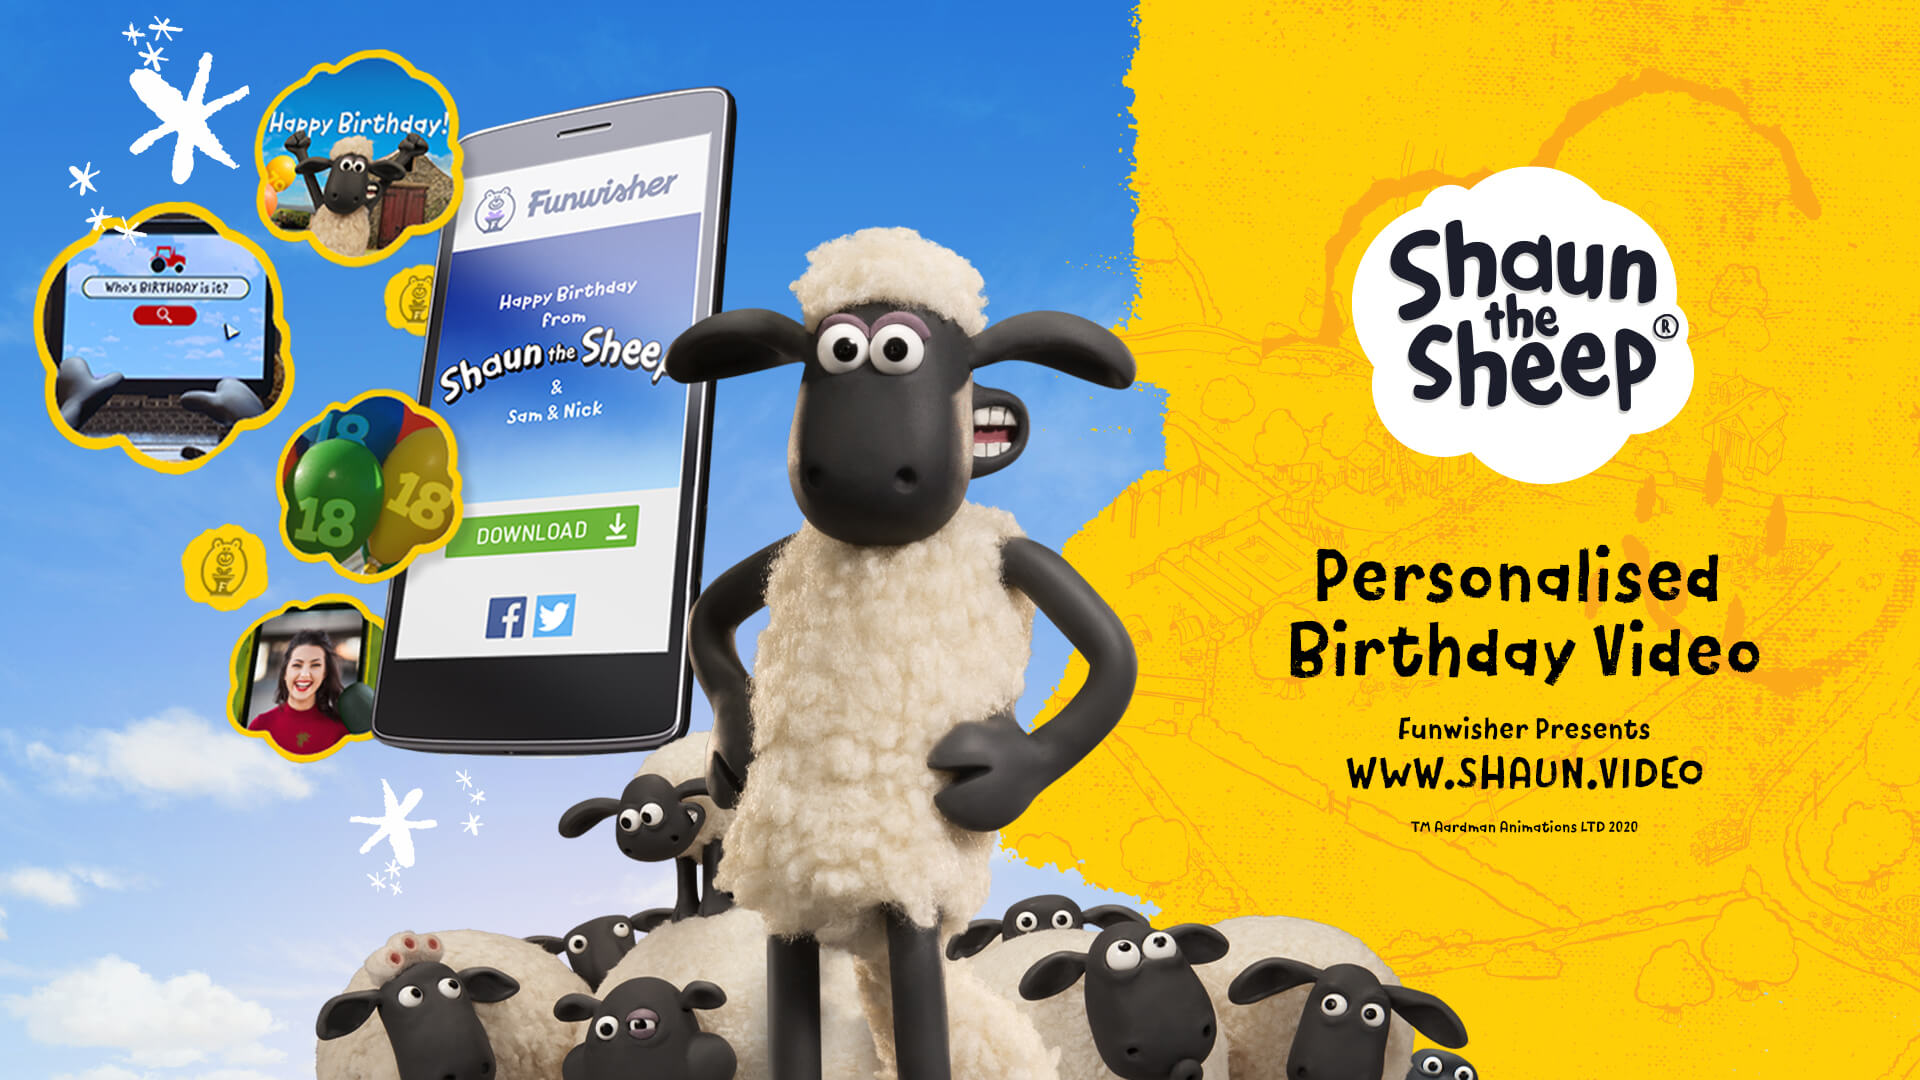 Fushwisher Shaun the Sheep birthday wishes